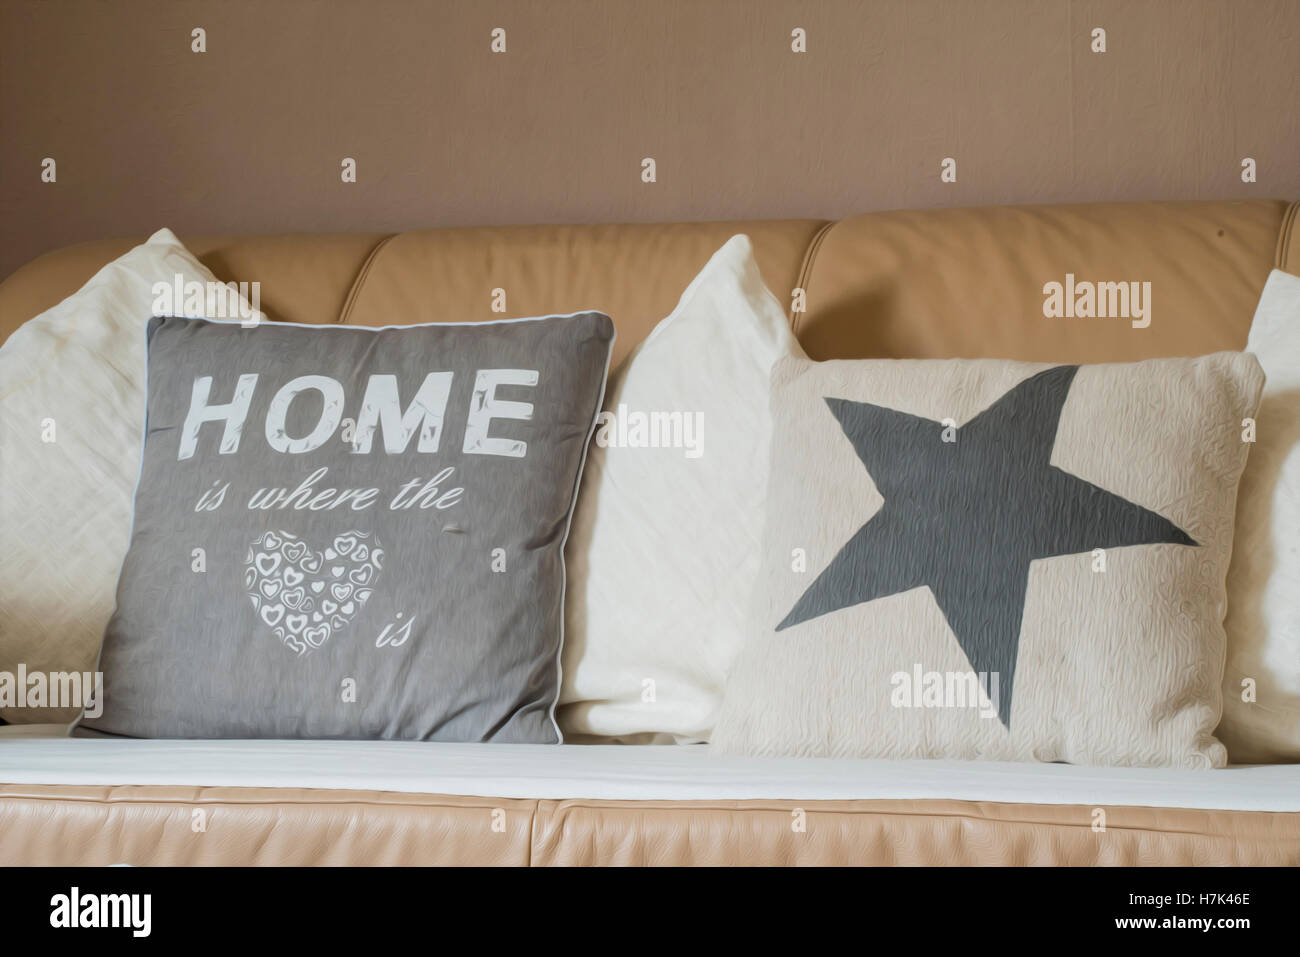 Home is where the heart pillow on sofa couch - Stock Image